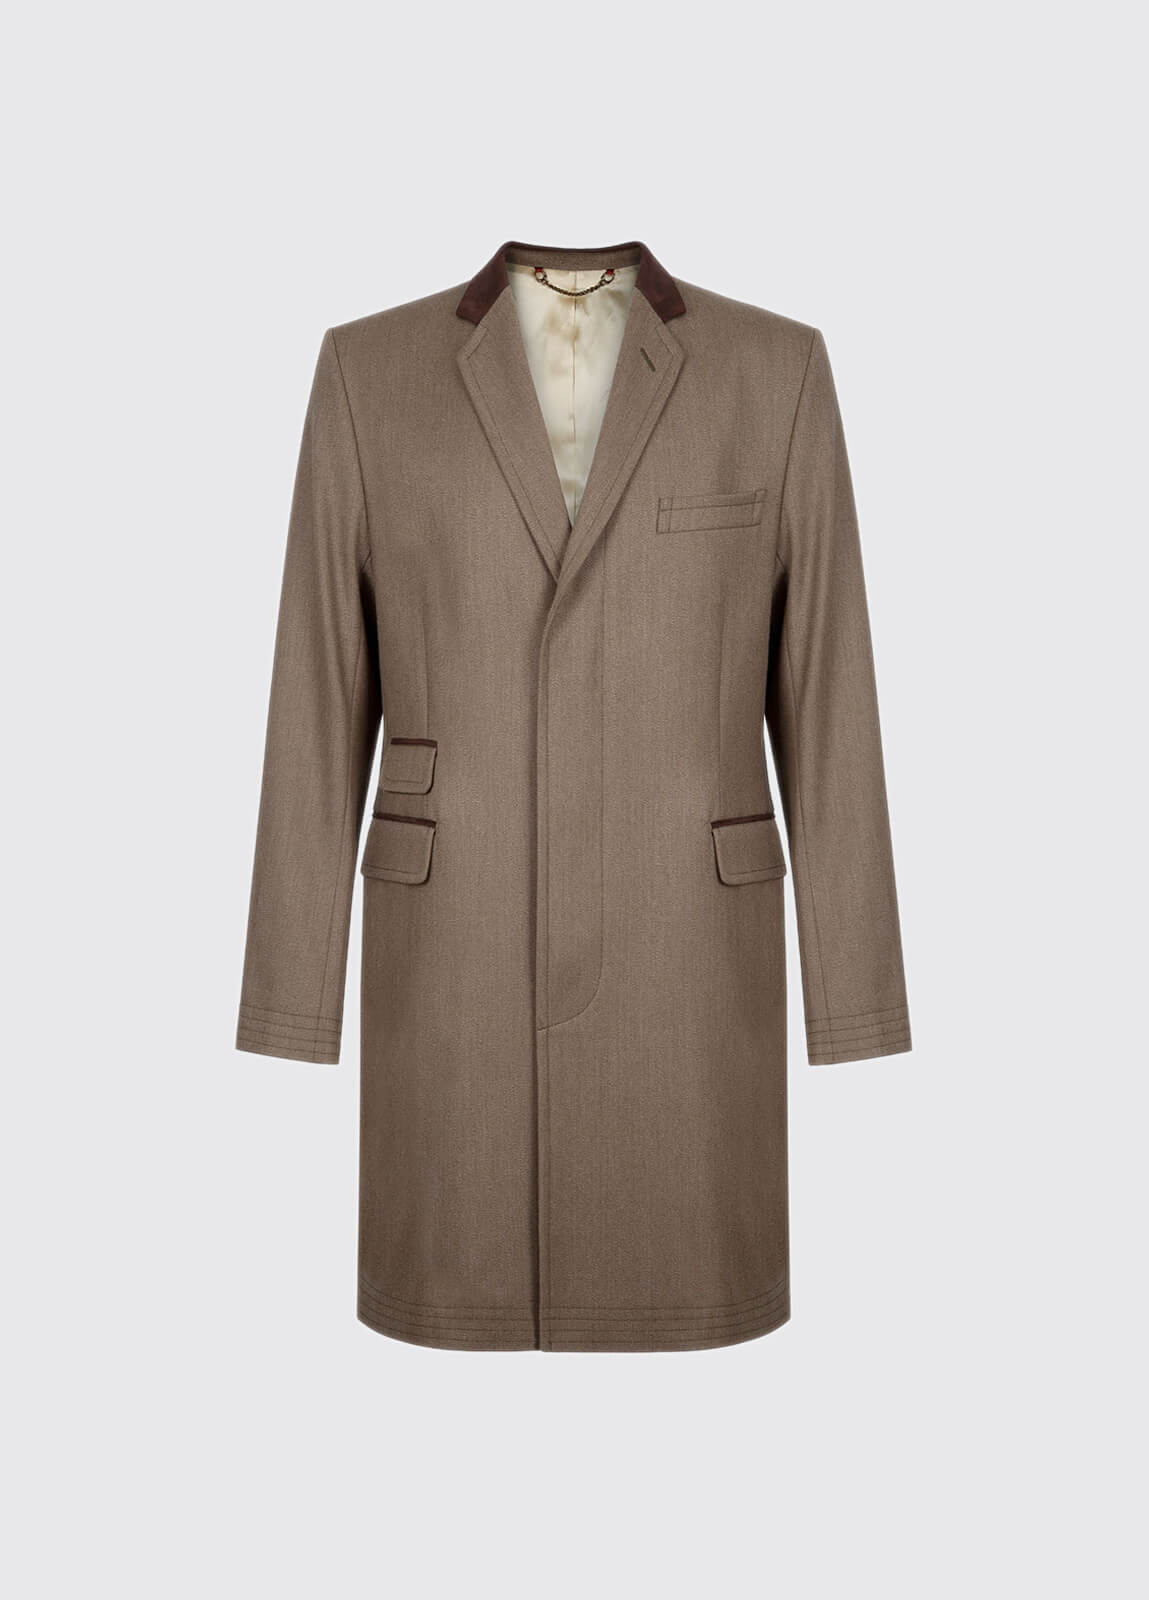 Woodlawn Mens Covert Coat - Loden